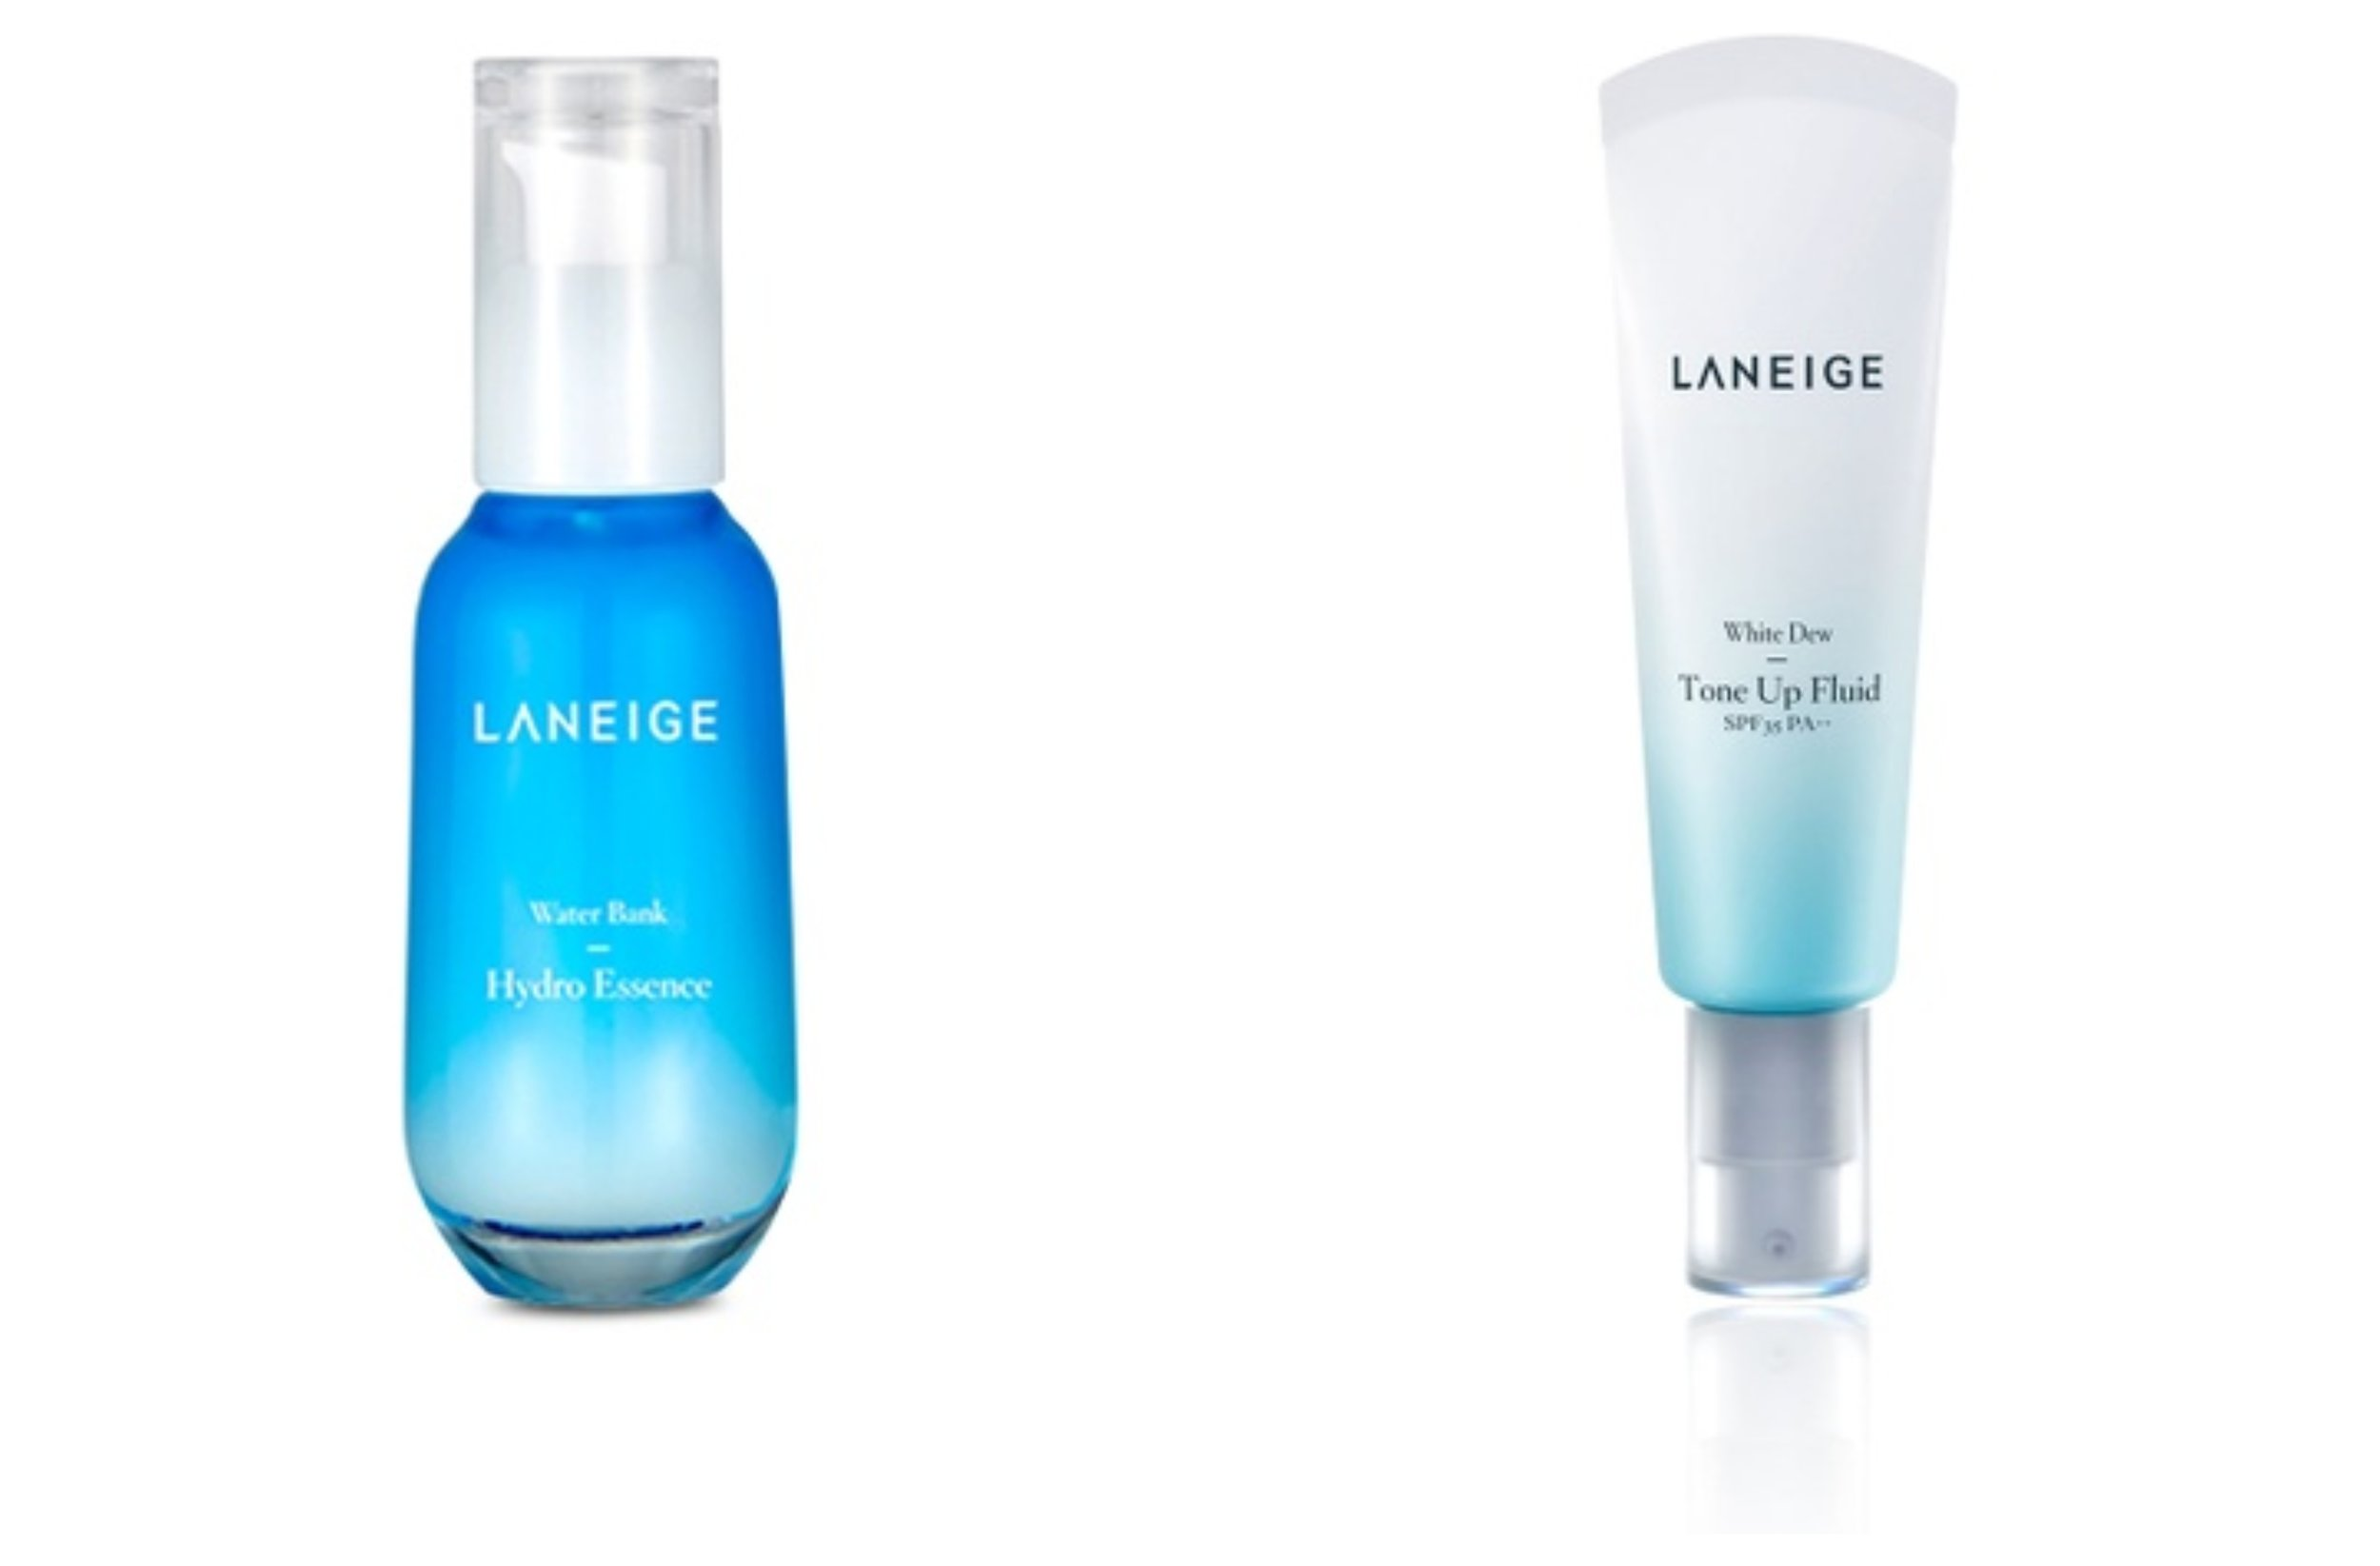 Laneige Water Bank Hydro Essence, Laneige White Dew Tone Up Fluid